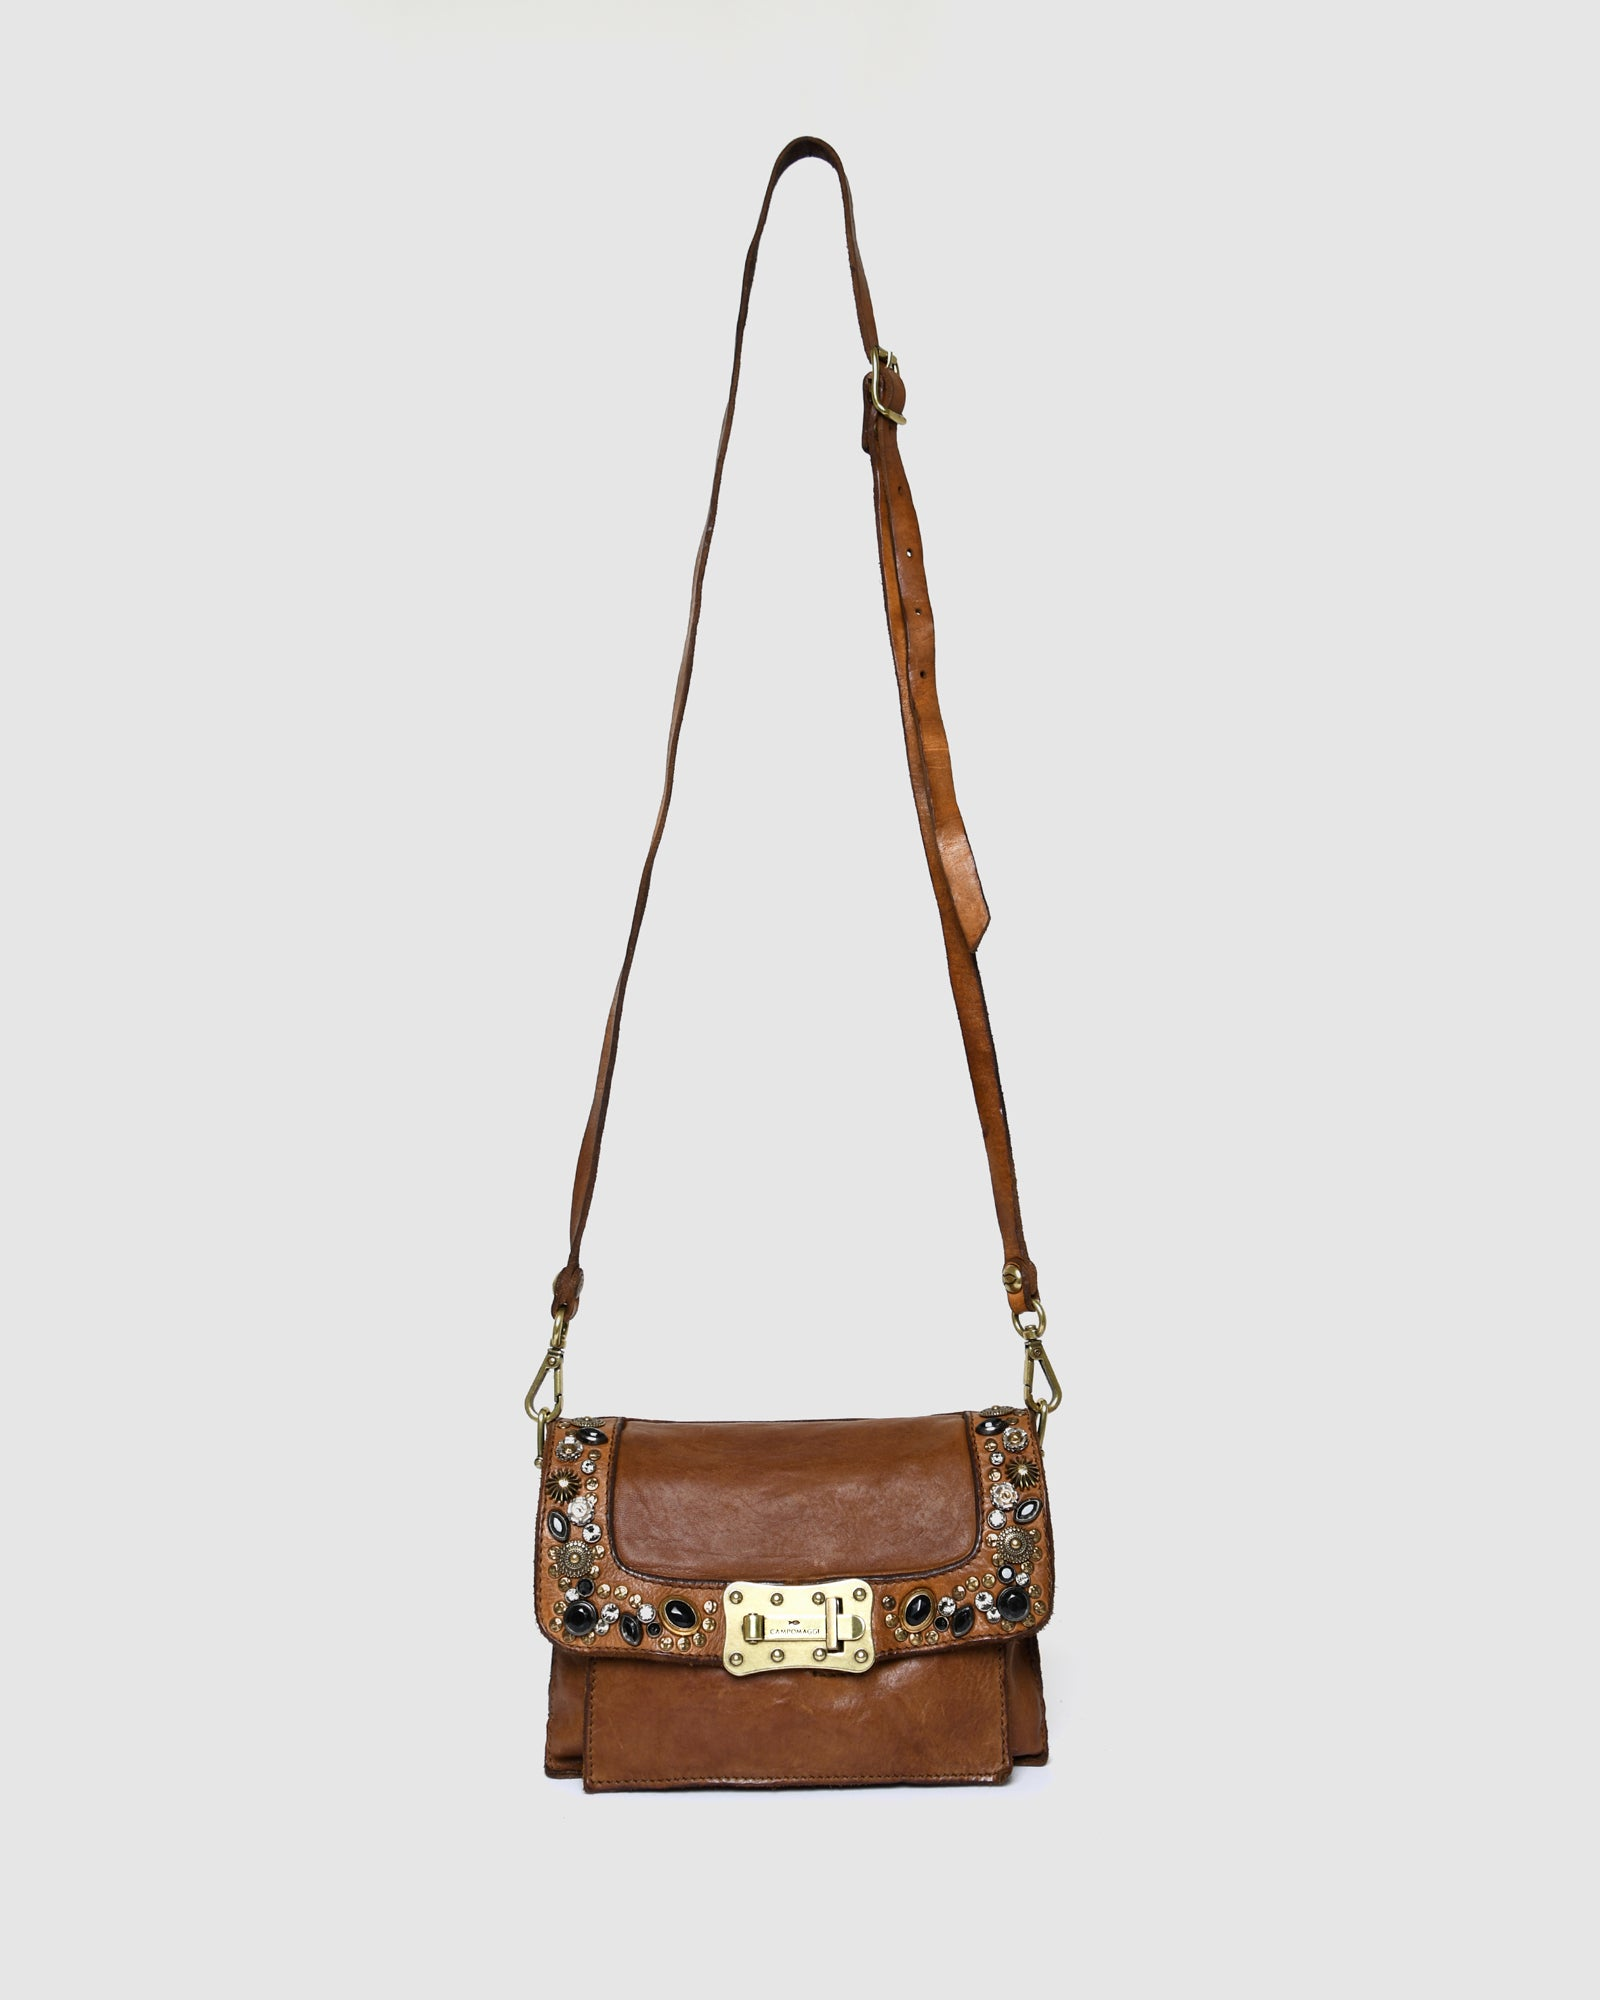 CAMPOMAGGI BELLA DI NOTTE CROSS BODY BAG COGNAC LEATHER